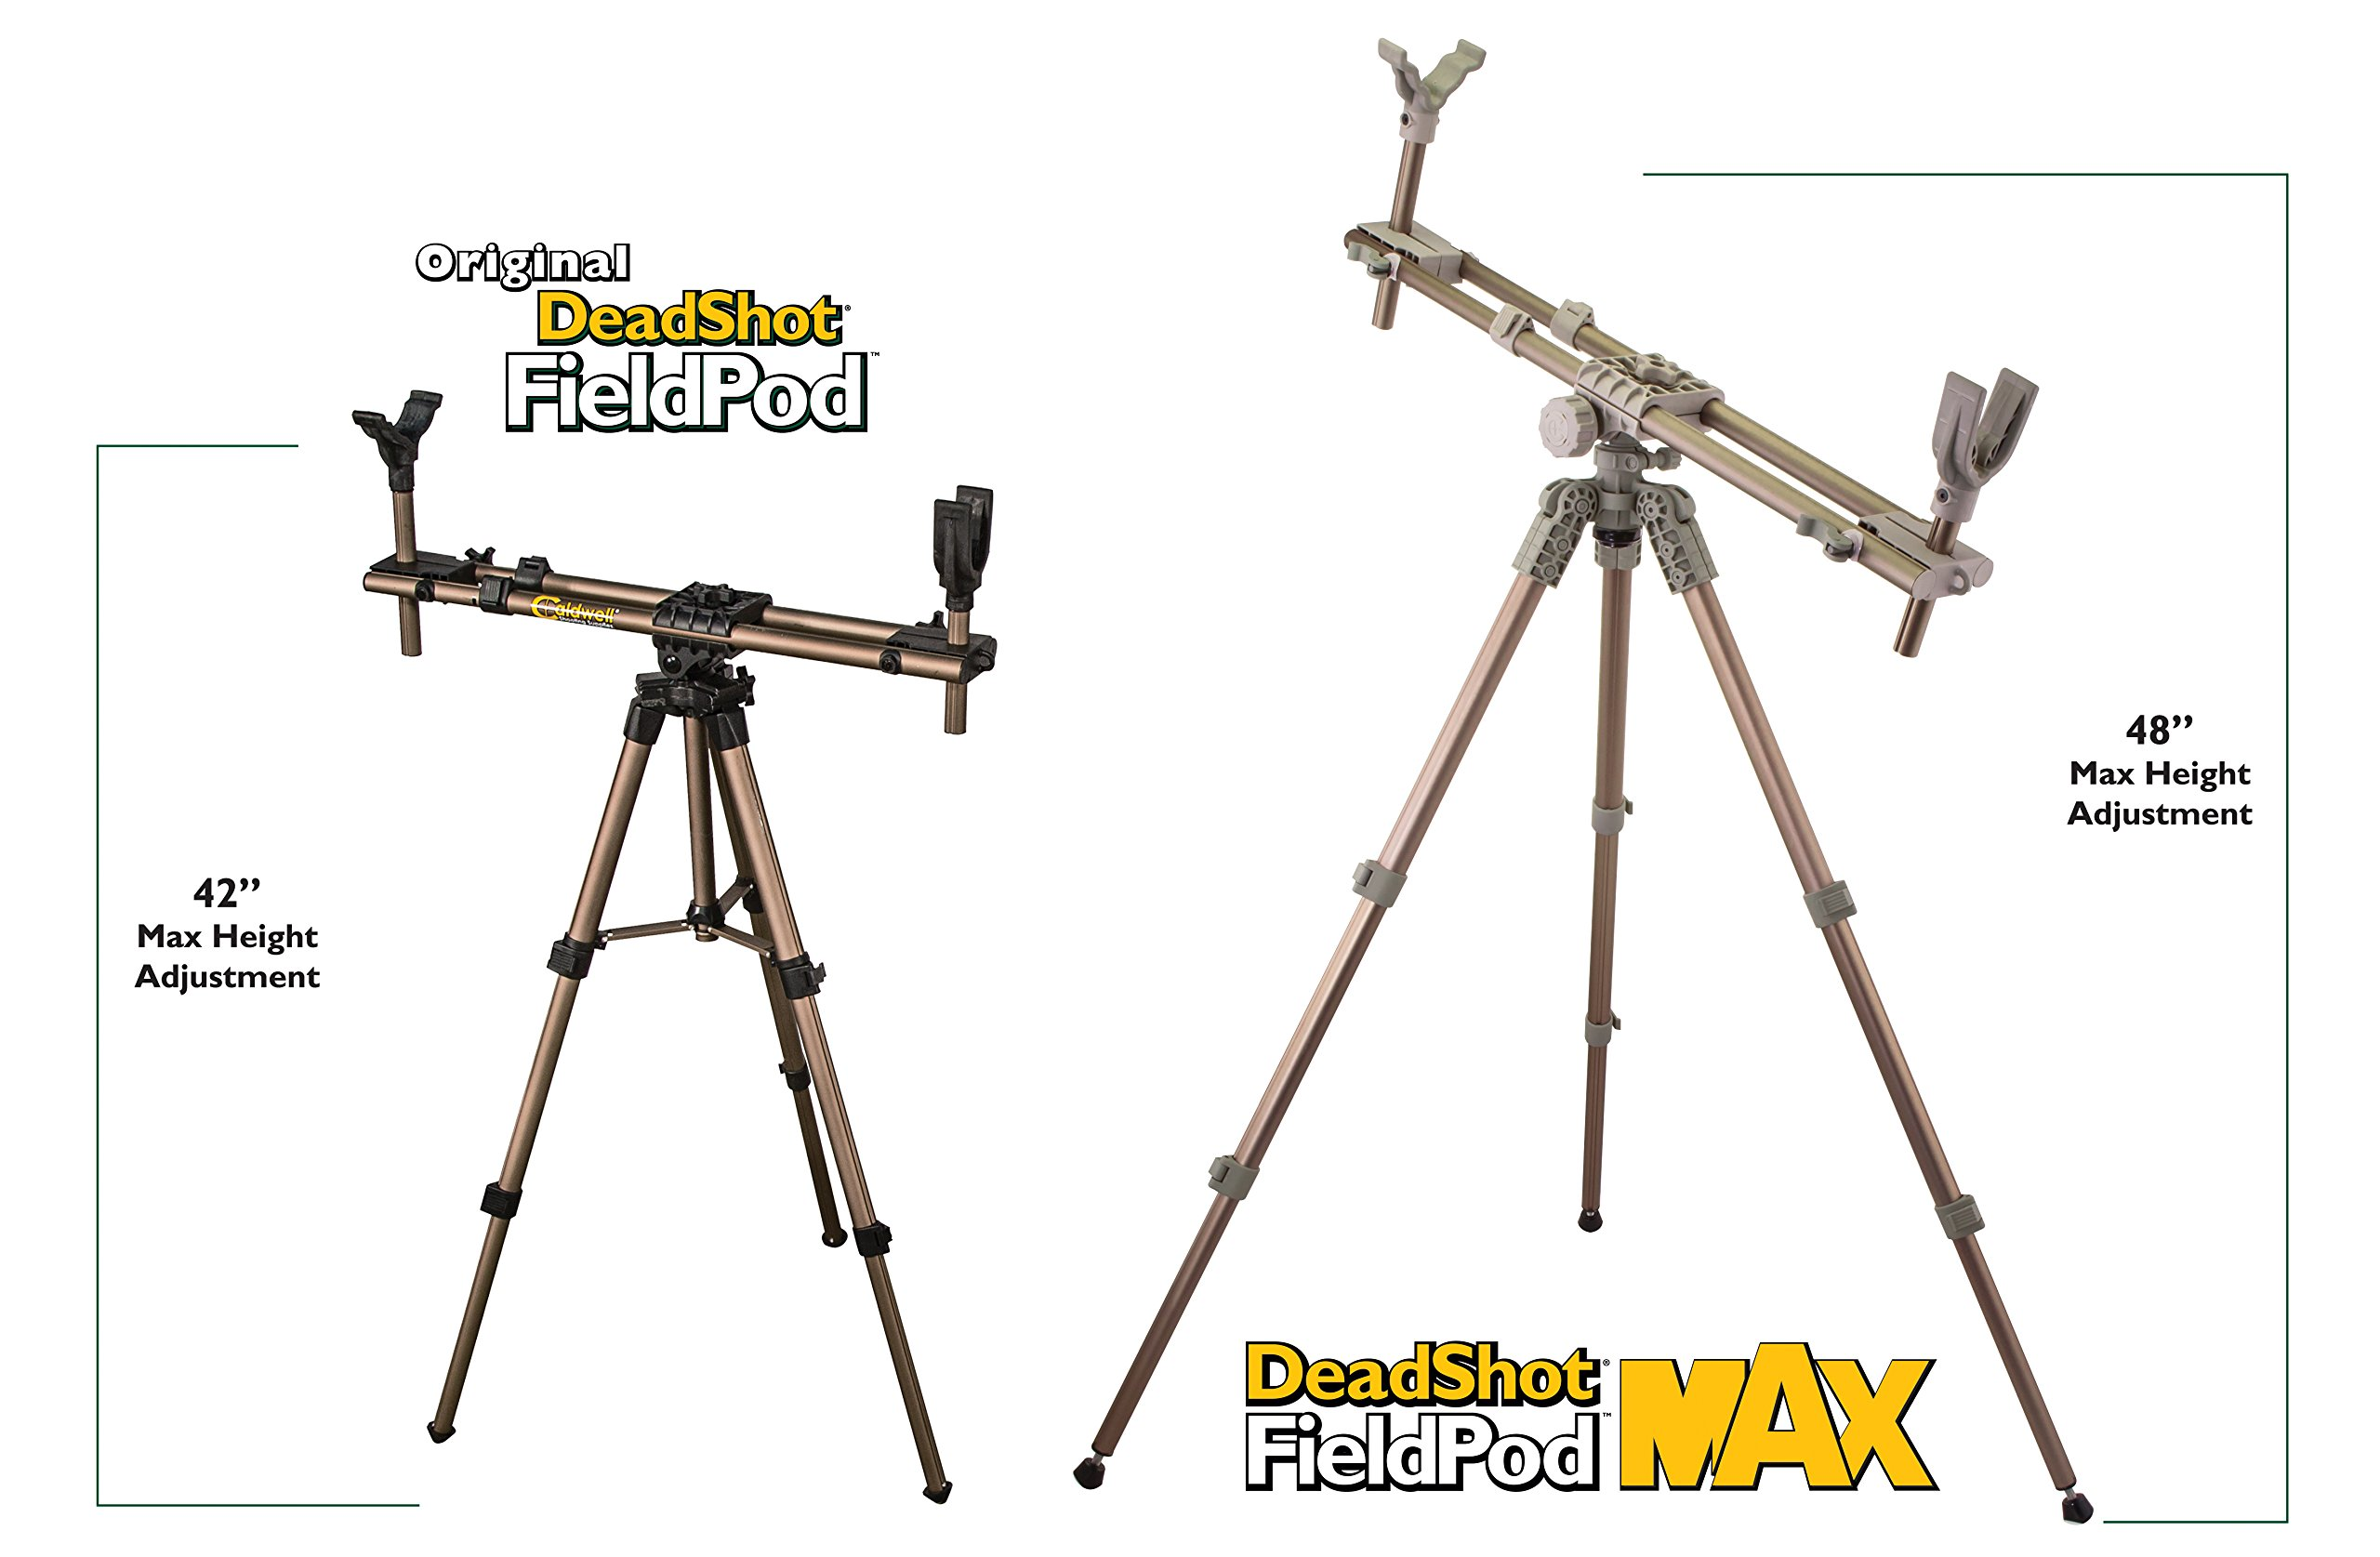 Caldwell DeadShot FieldPod Max Adjustable Ambidextrous Rifle Shooting Rest for Outdoor Range and Hunting by Caldwell (Image #3)